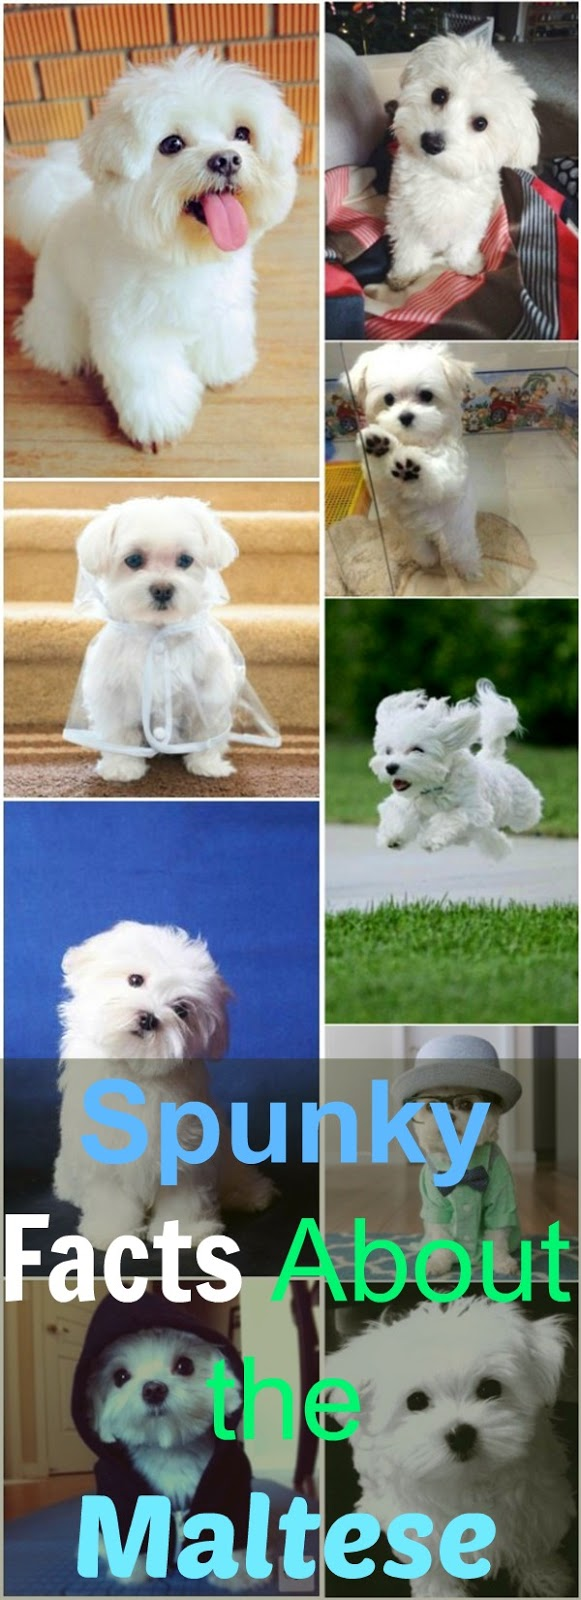 Spunky Facts About the Maltese